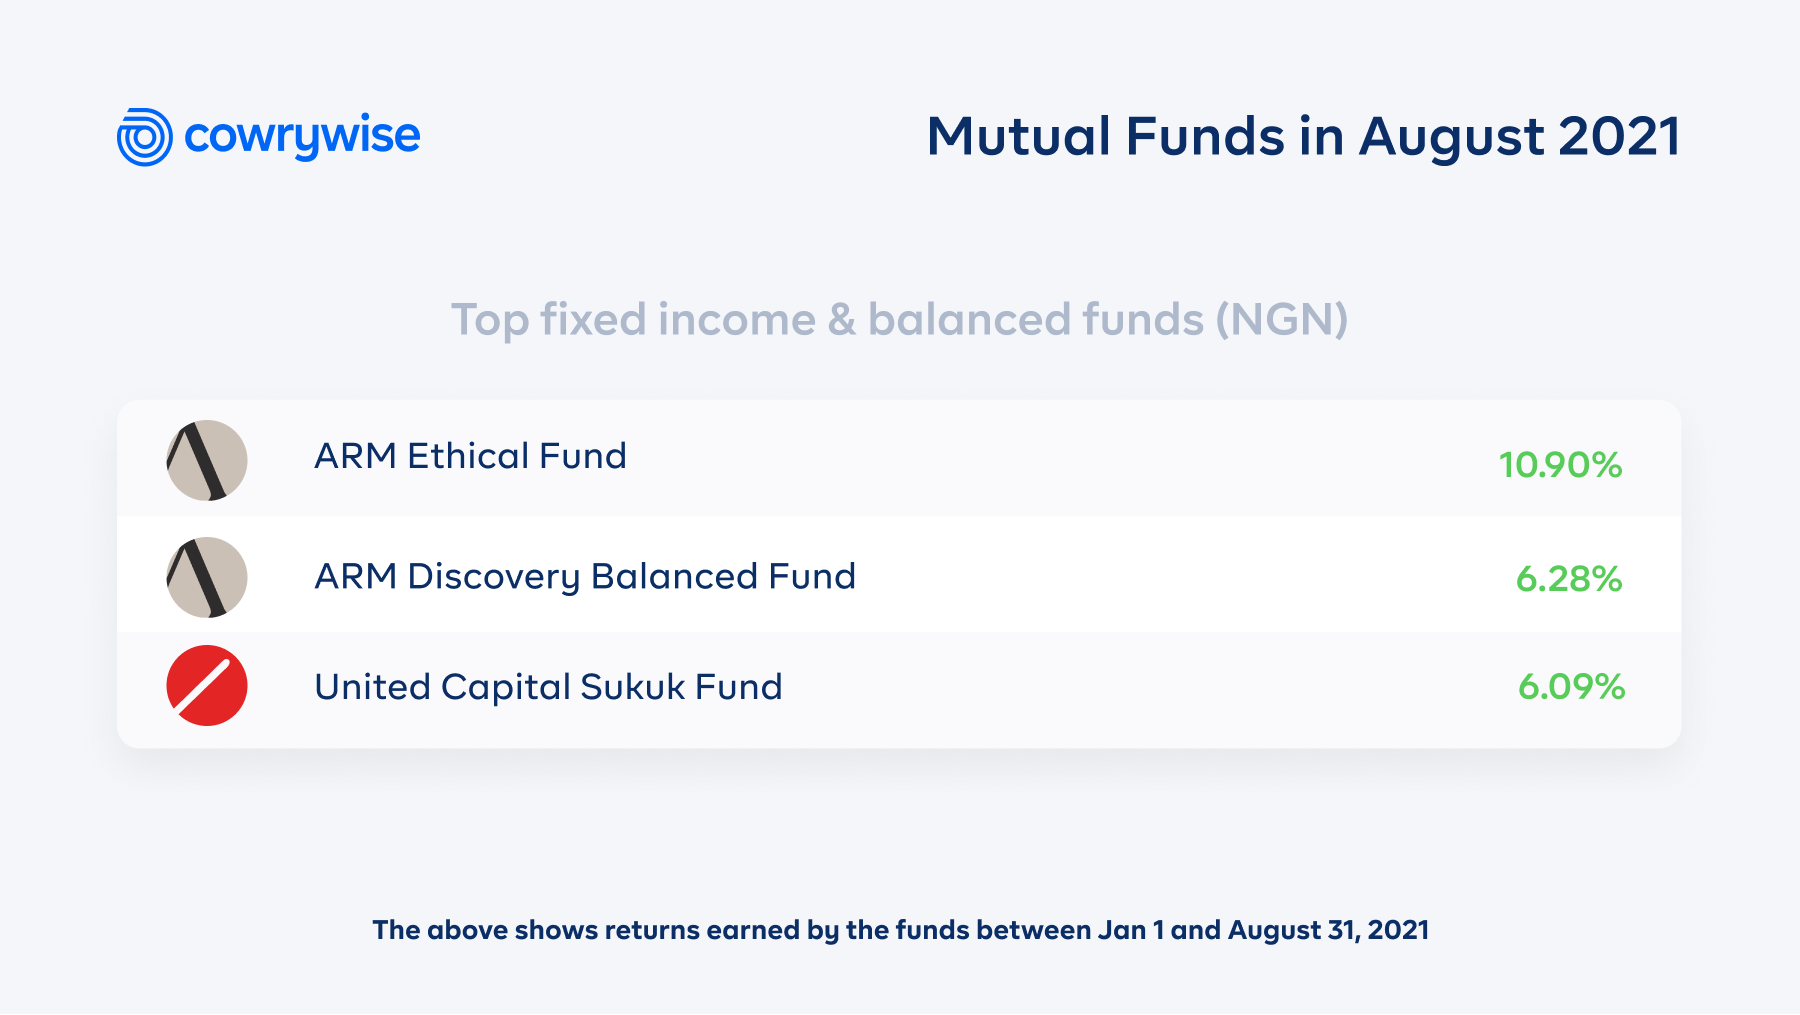 Mutual Funds in August 2021